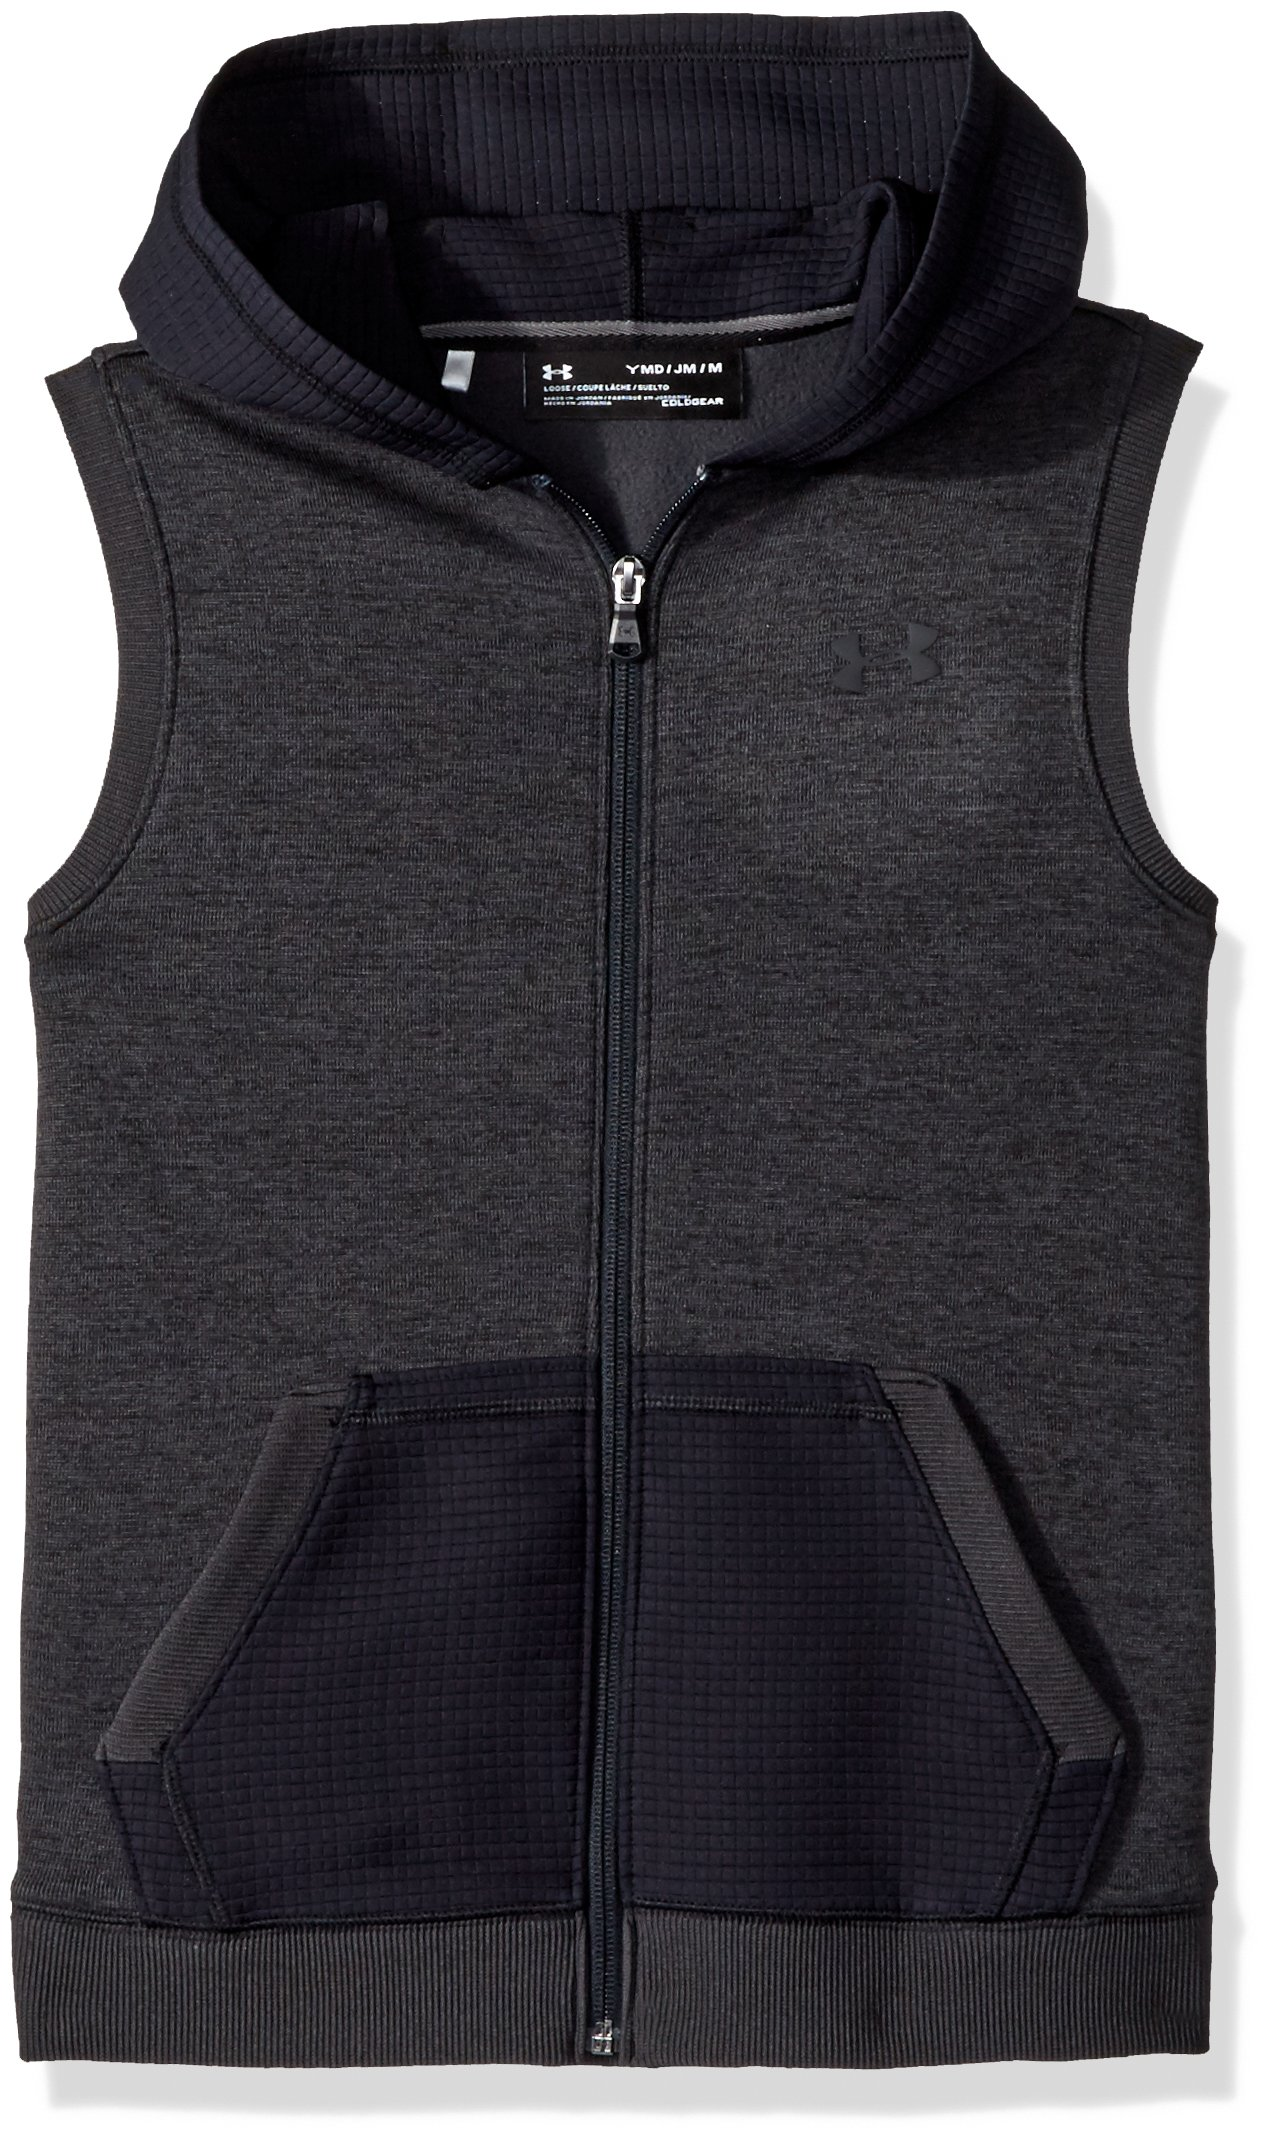 Under Armour Boys' Storm SF Hoodie Vest, Black (001)/Black, Youth Medium by Under Armour